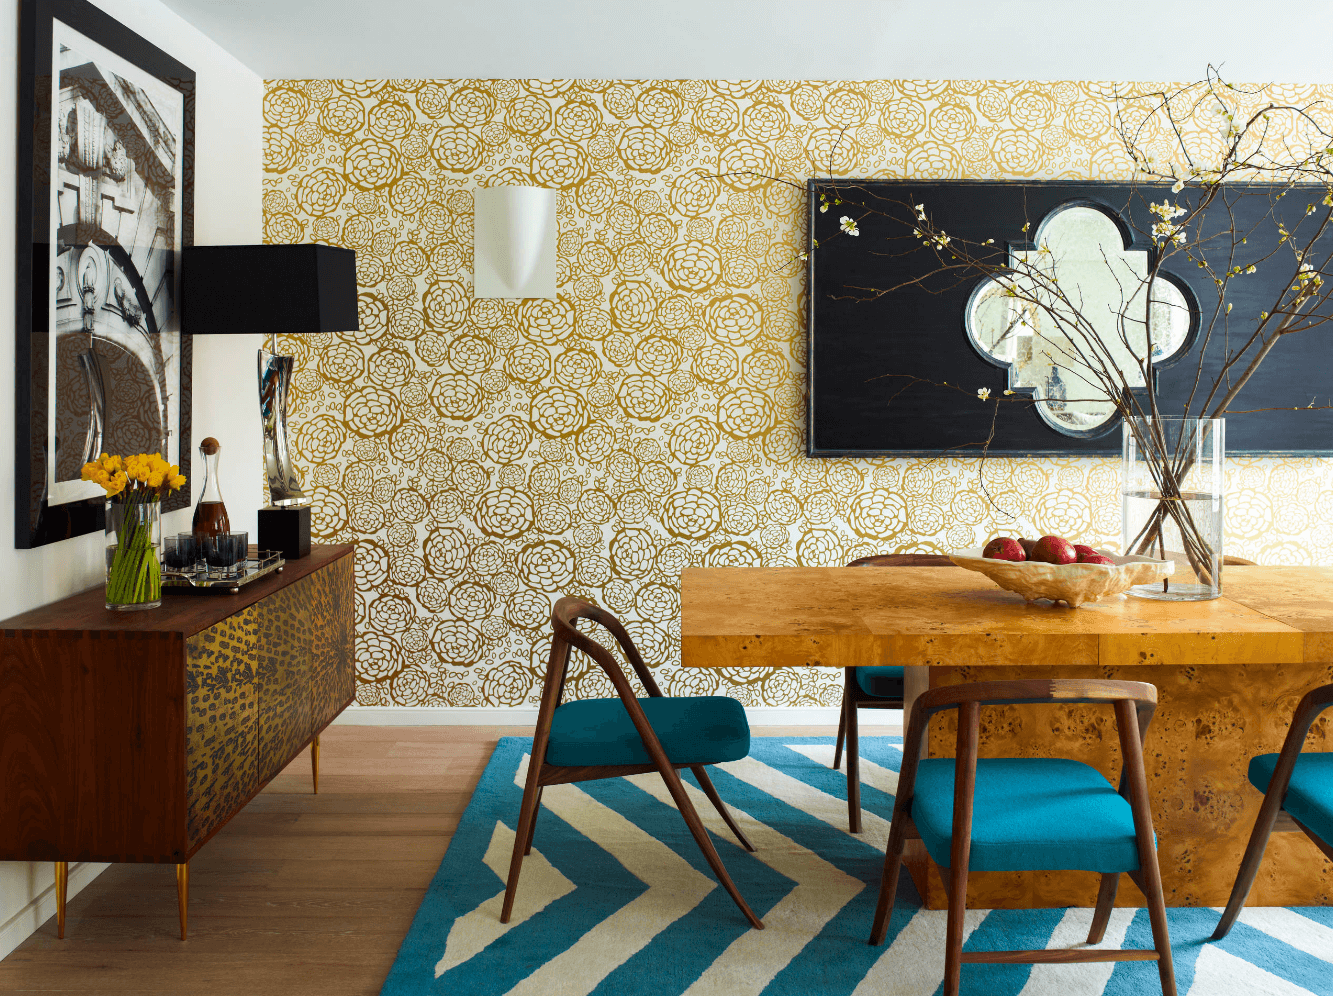 Wallpaper For Dining Room Modern.Your Home Needs 28 Stunning Wallpaper Ideas Home Lighting